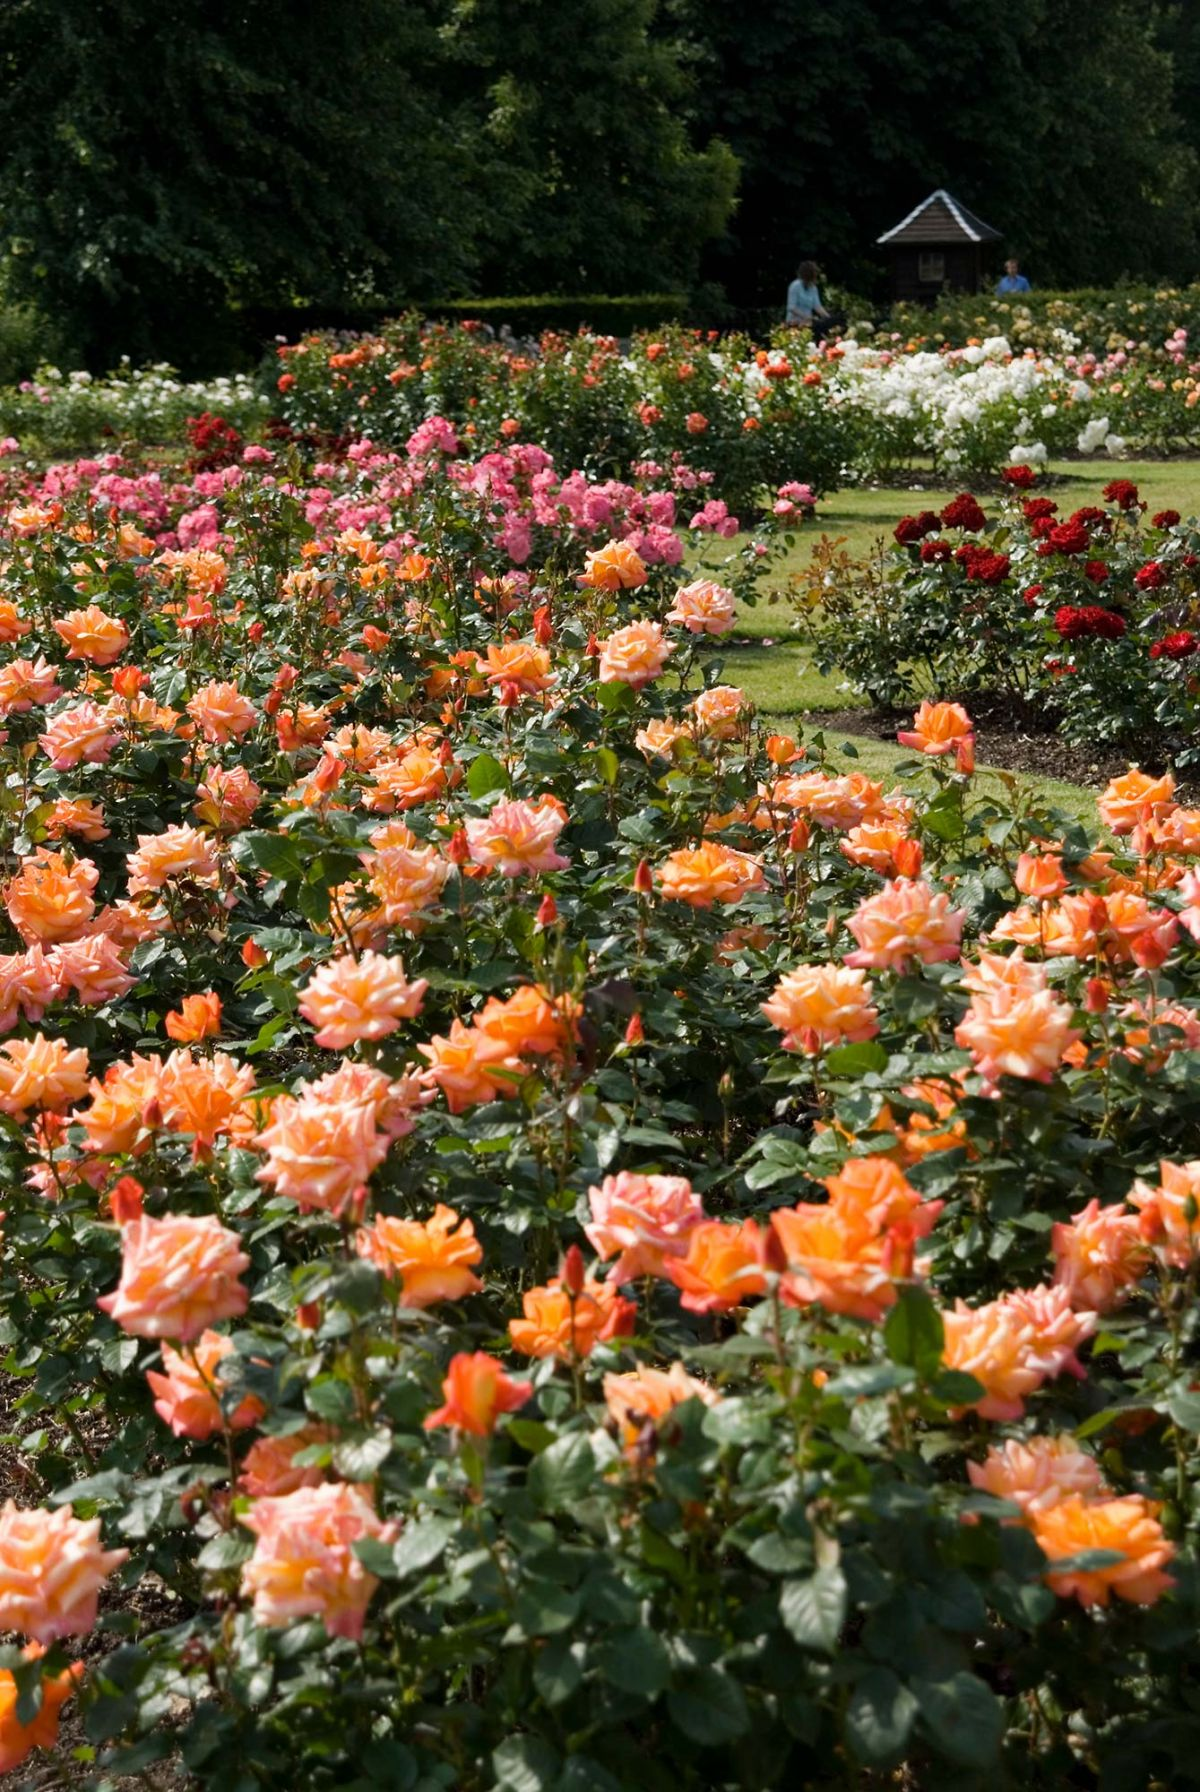 rose garden A spectacular garden featuring rose planting mixed with herbaceous planting to create rich seasonal flower beds and strong scents.